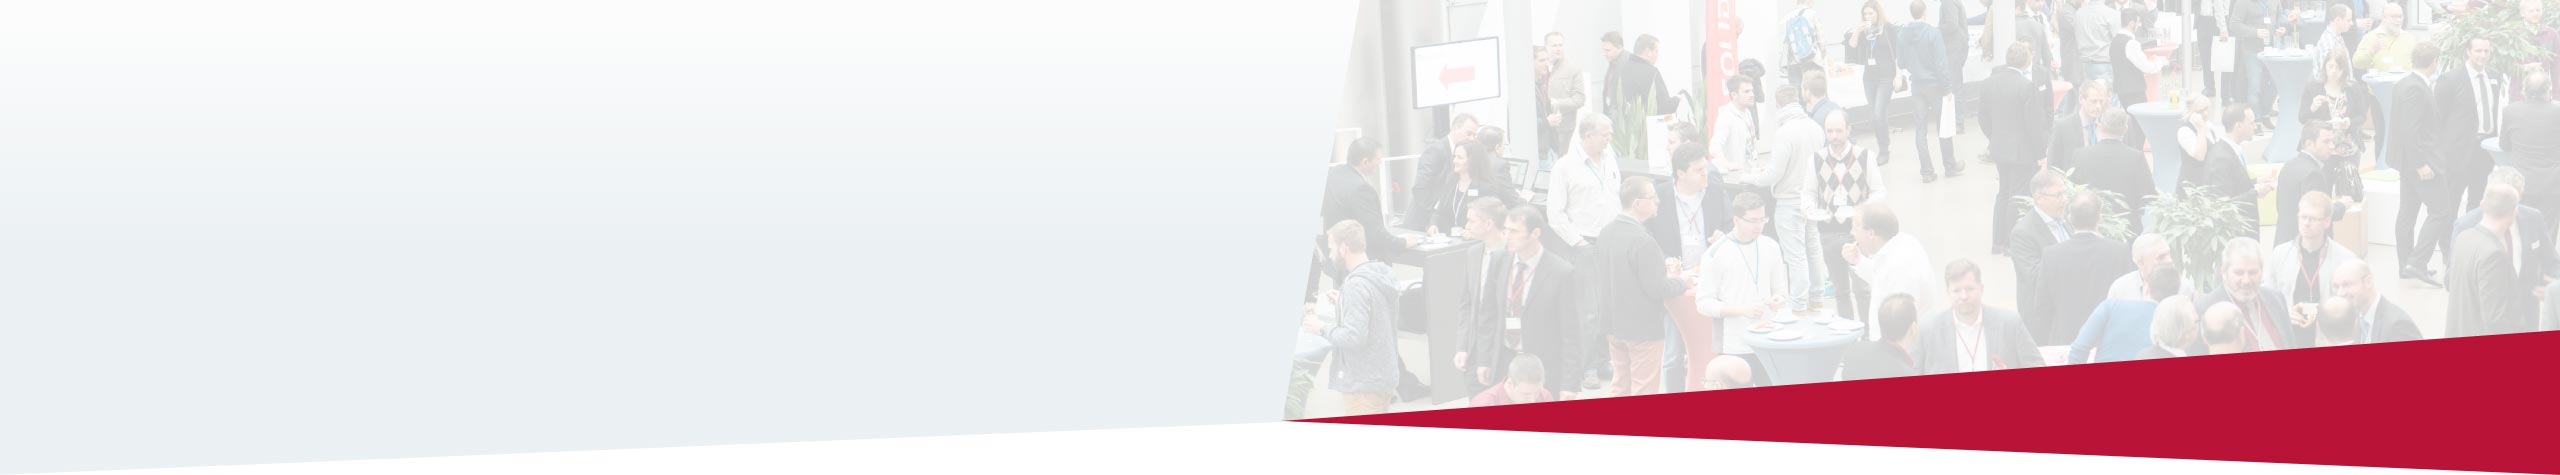 SOLIDWORKS 2018 Launch-Events.